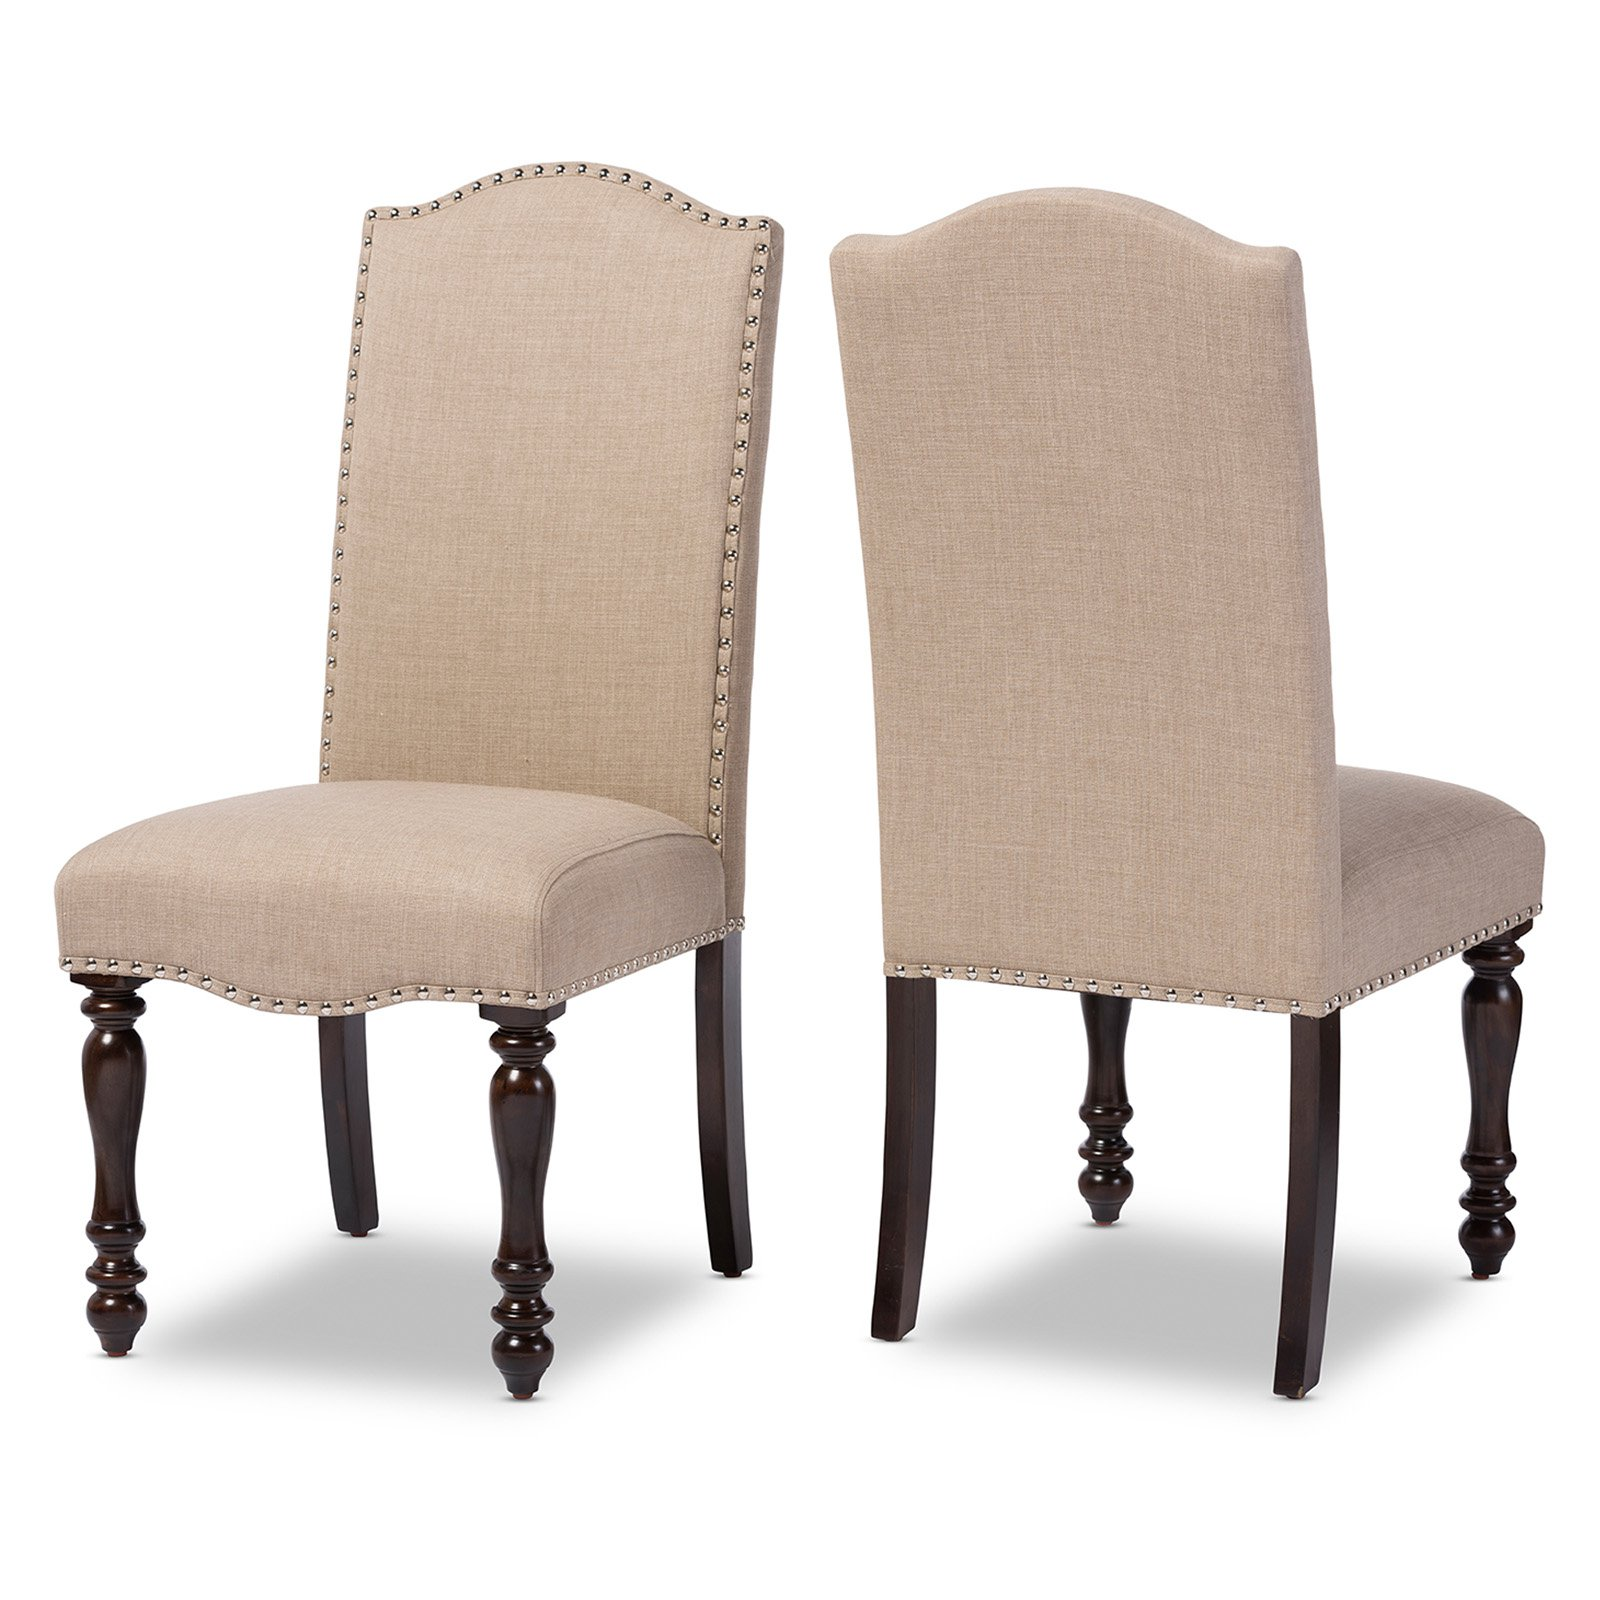 Baxton Studio Zachary Chic French Vintage Oak Brown Beige Linen Fabric Upholstered Dining Chair, Set of 2